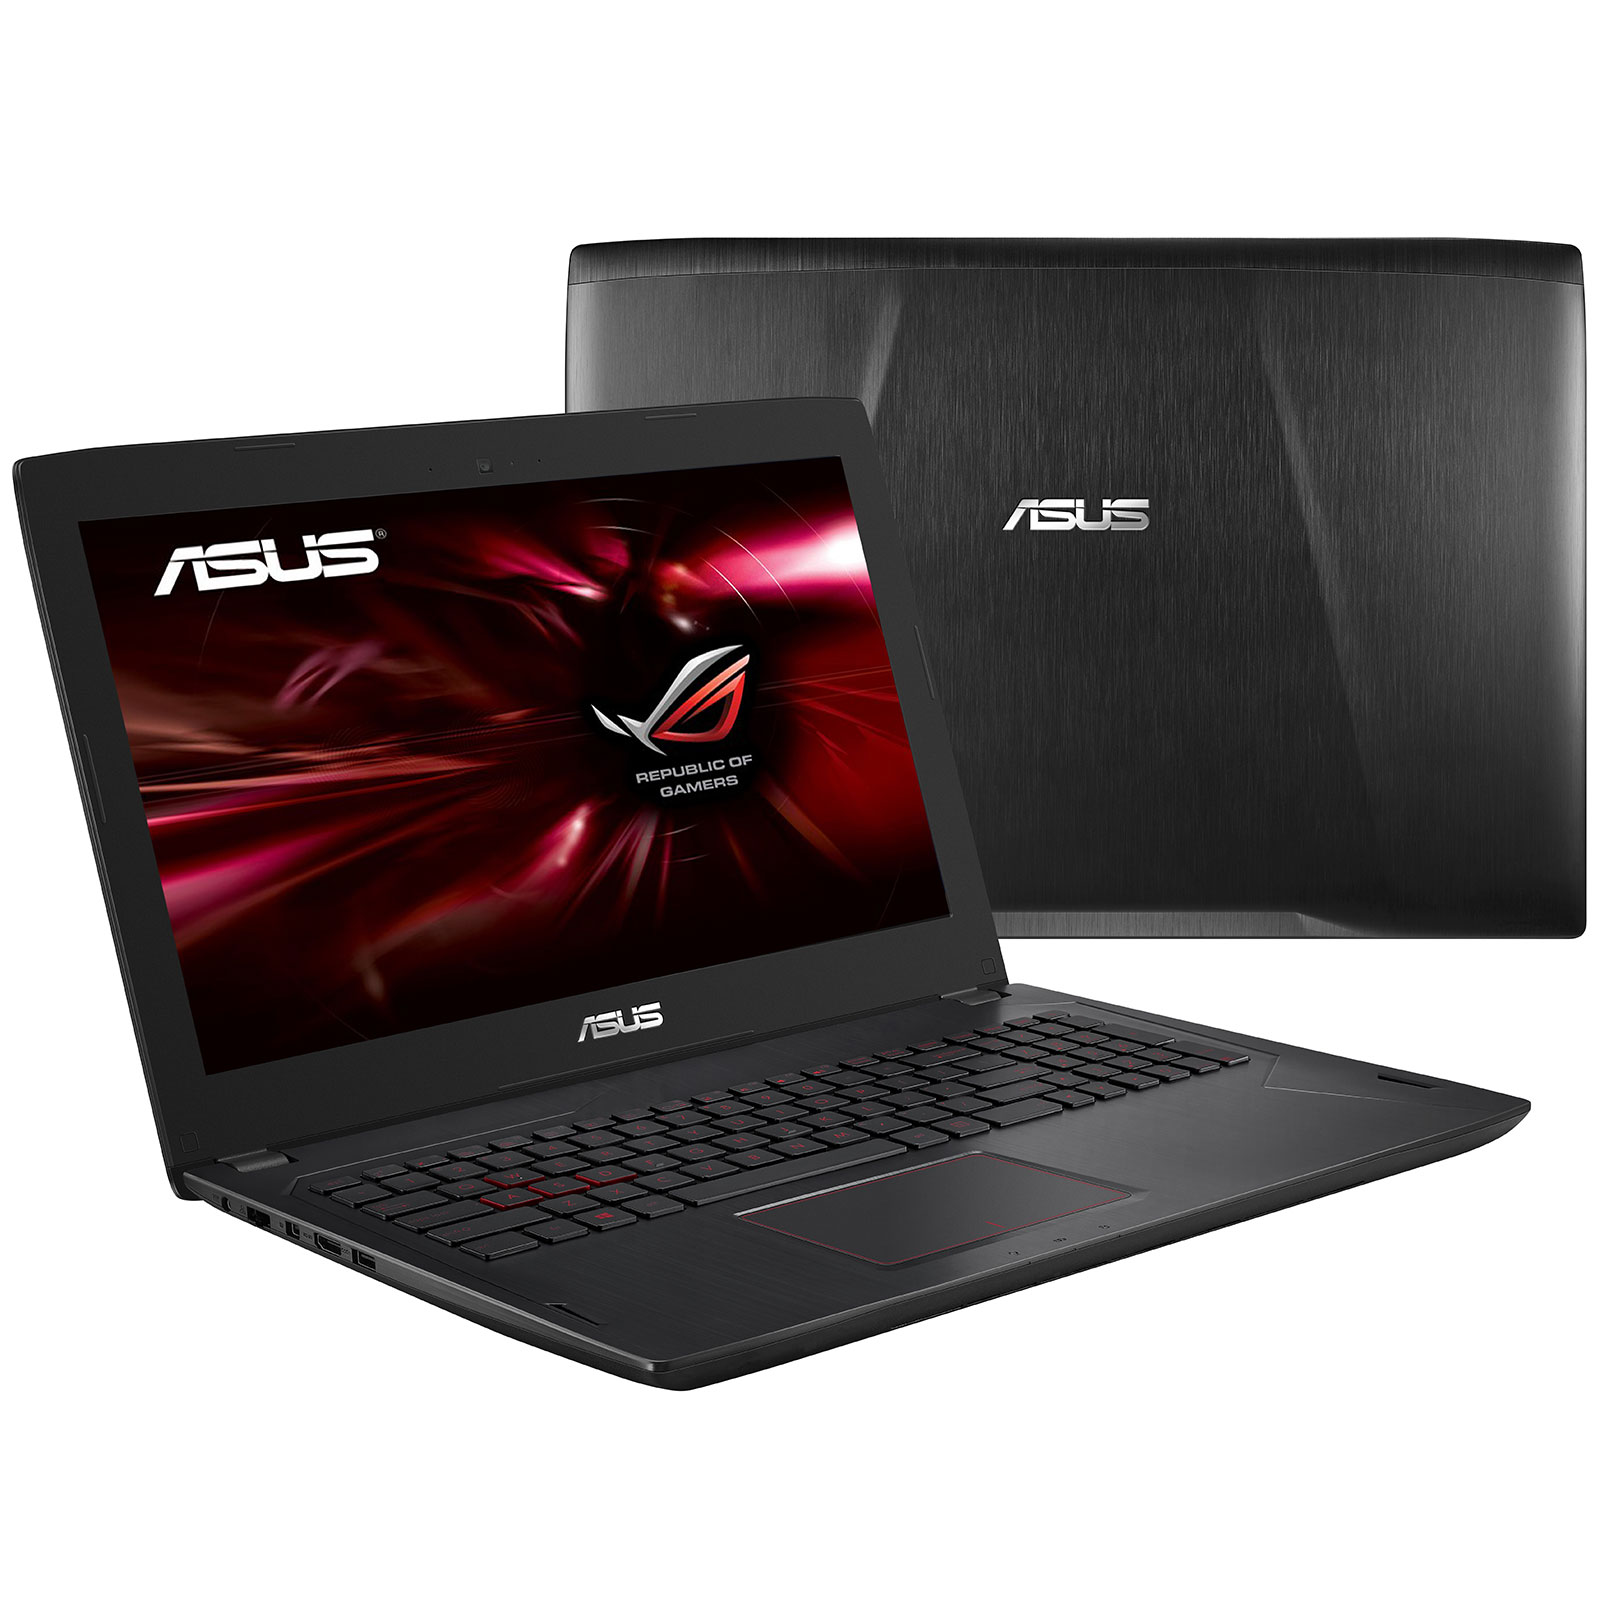 asus fx753vd gc007t pc portable asus sur. Black Bedroom Furniture Sets. Home Design Ideas